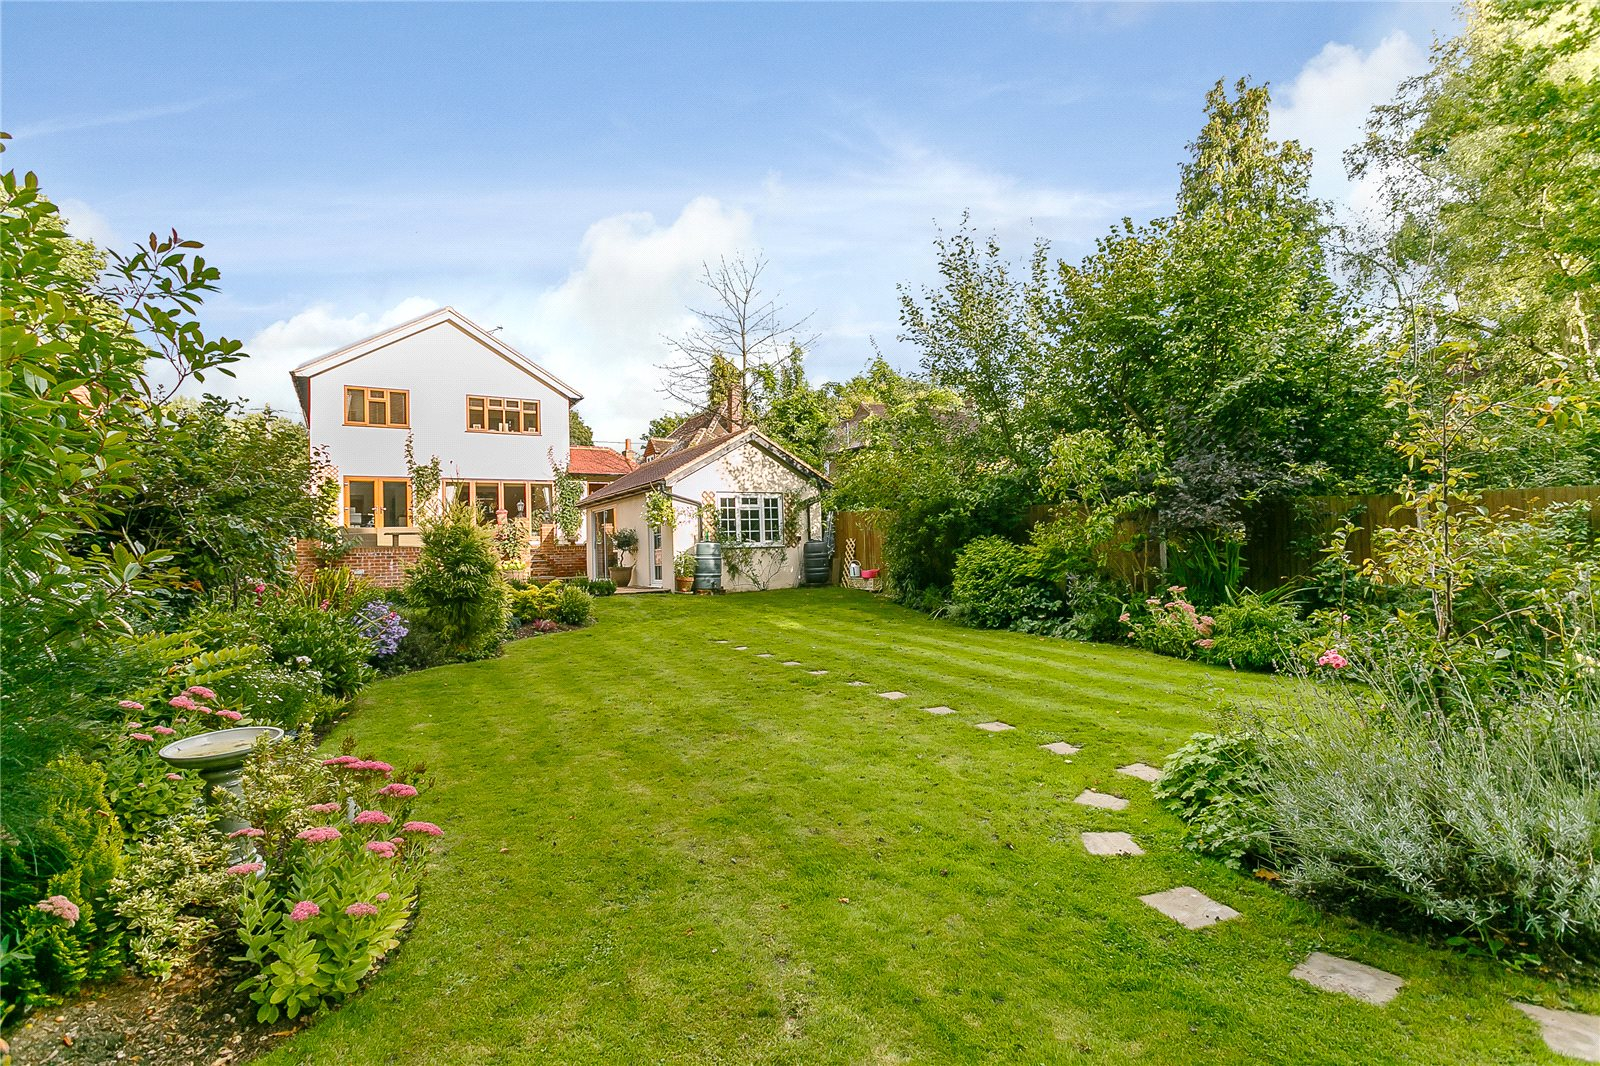 Single Family Home for Sale at Glaziers Lane, Normandy, Guildford, Surrey, GU3 Guildford, England